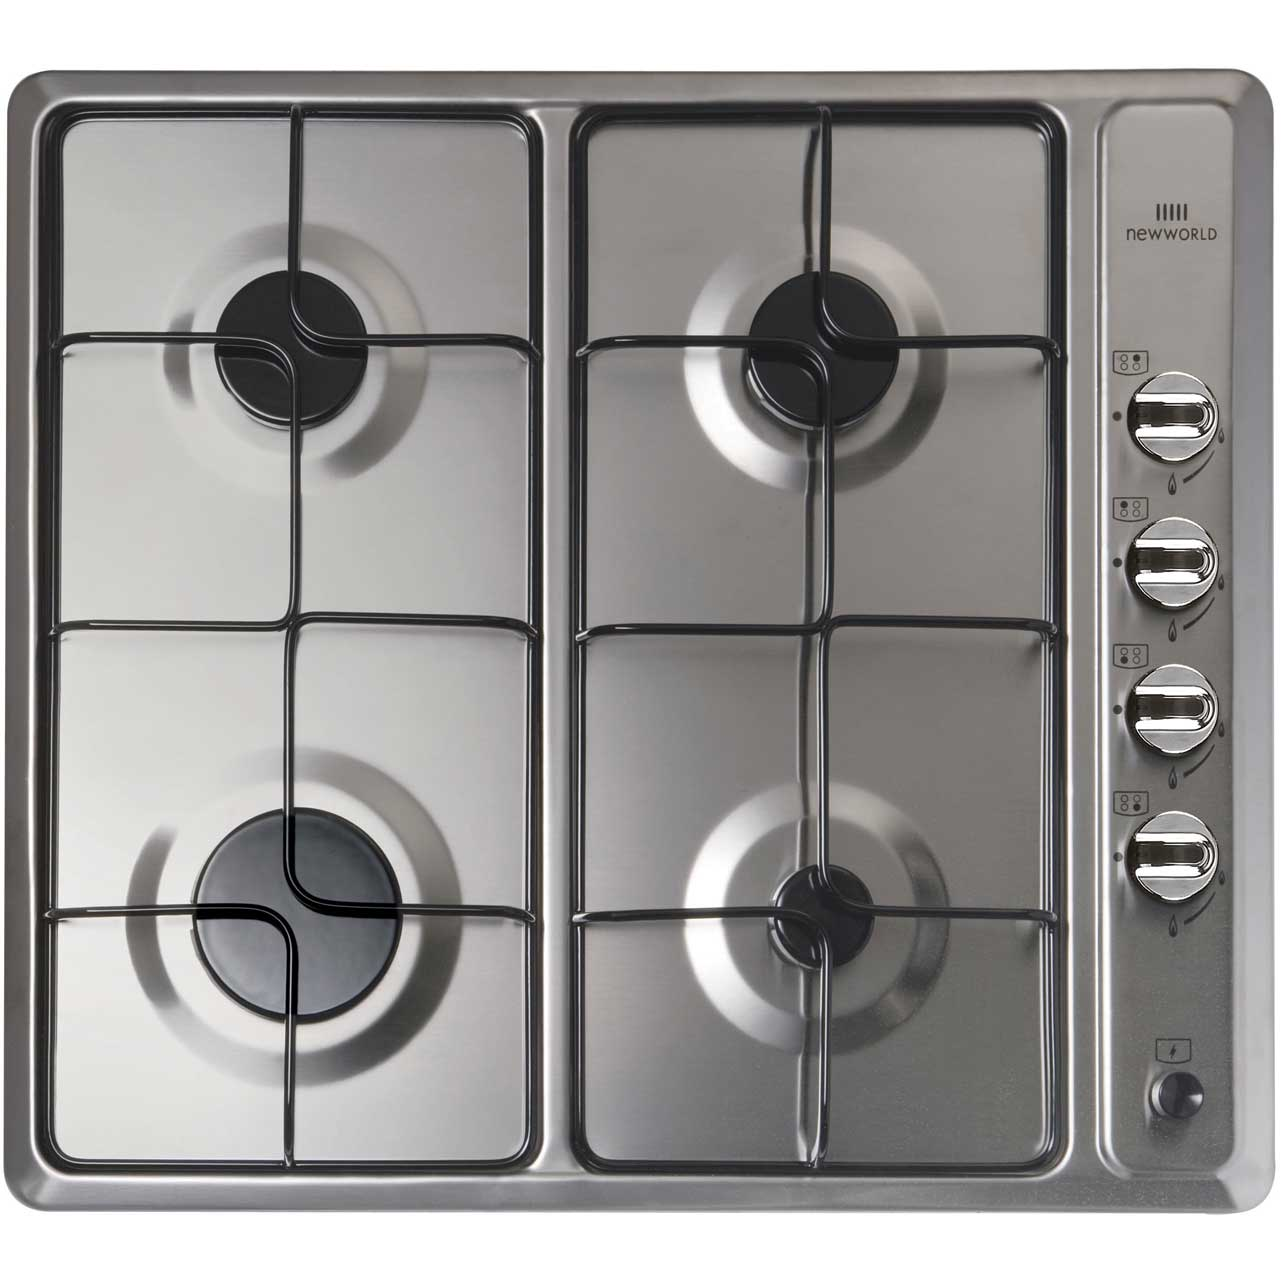 Newworld NWGHU601 58cm Gas Hob - Stainless Steel